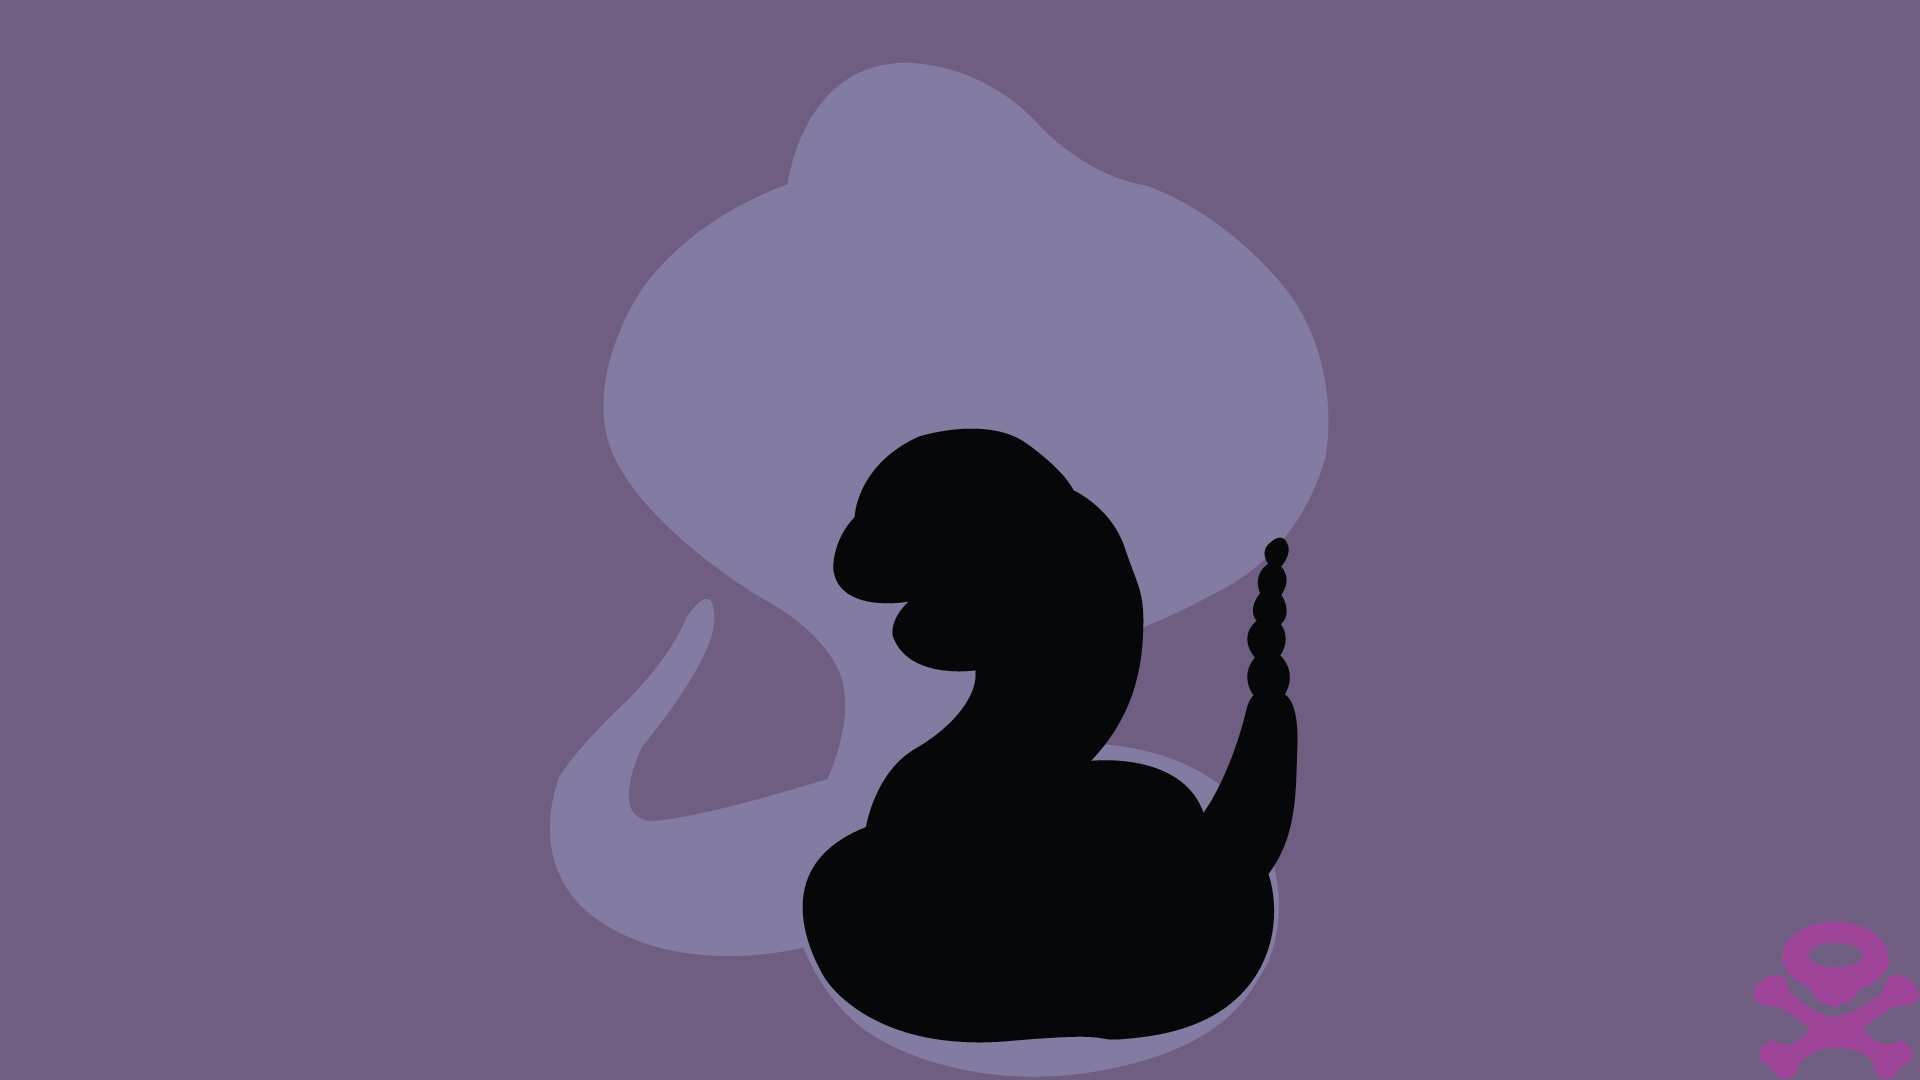 Arbok Evolution Line Minimalism by PikachuIsUber on DeviantArt